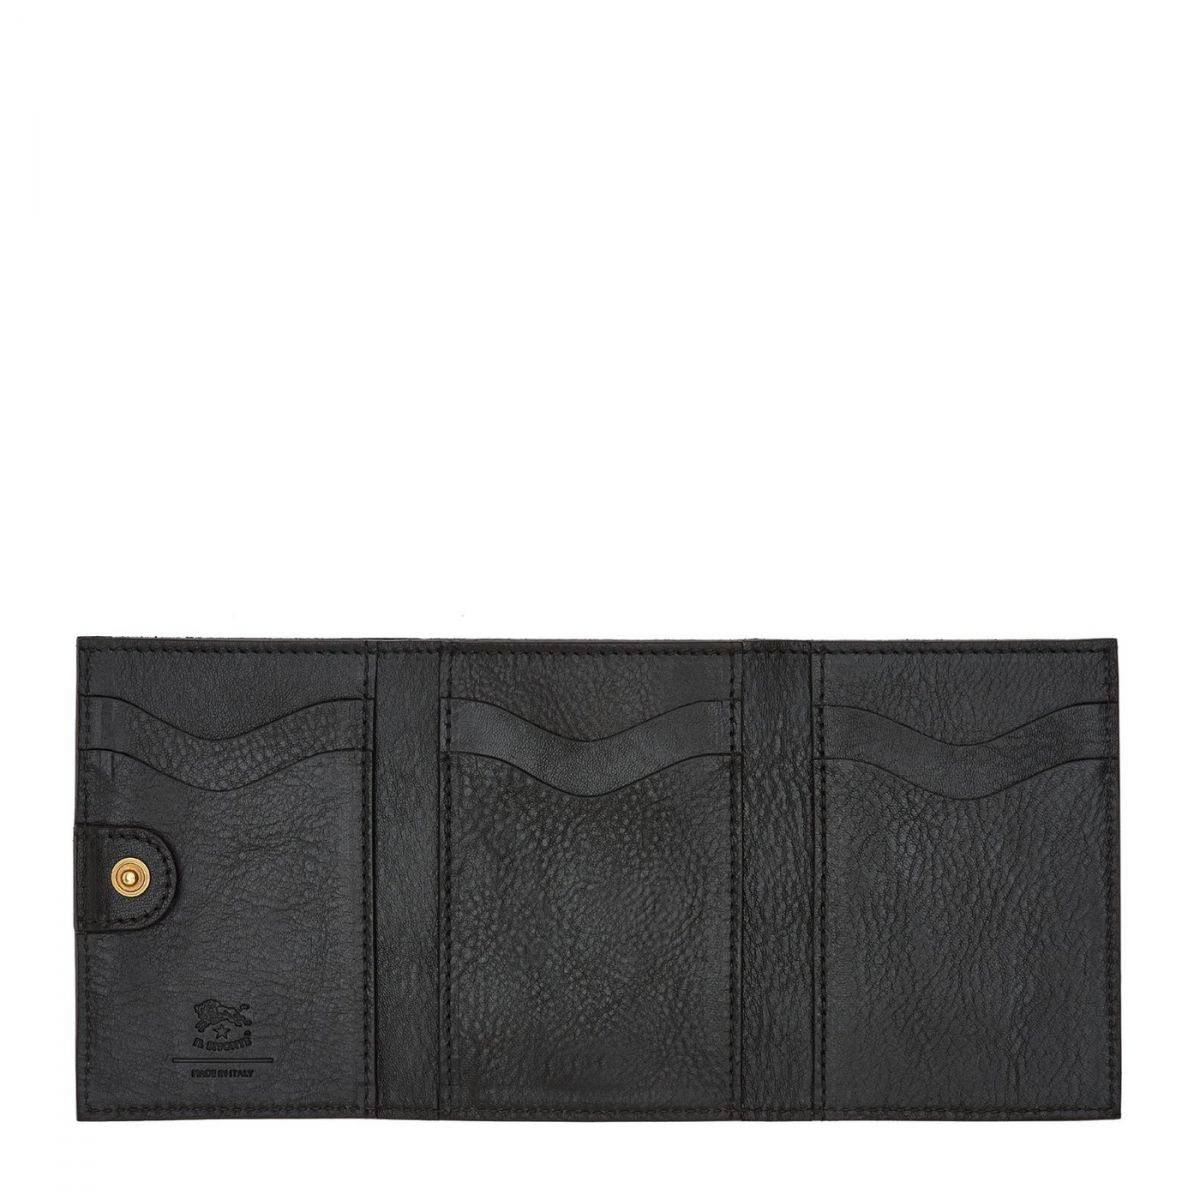 Women's Wallet  in Cowhide Leather SMW098 color Black | Details